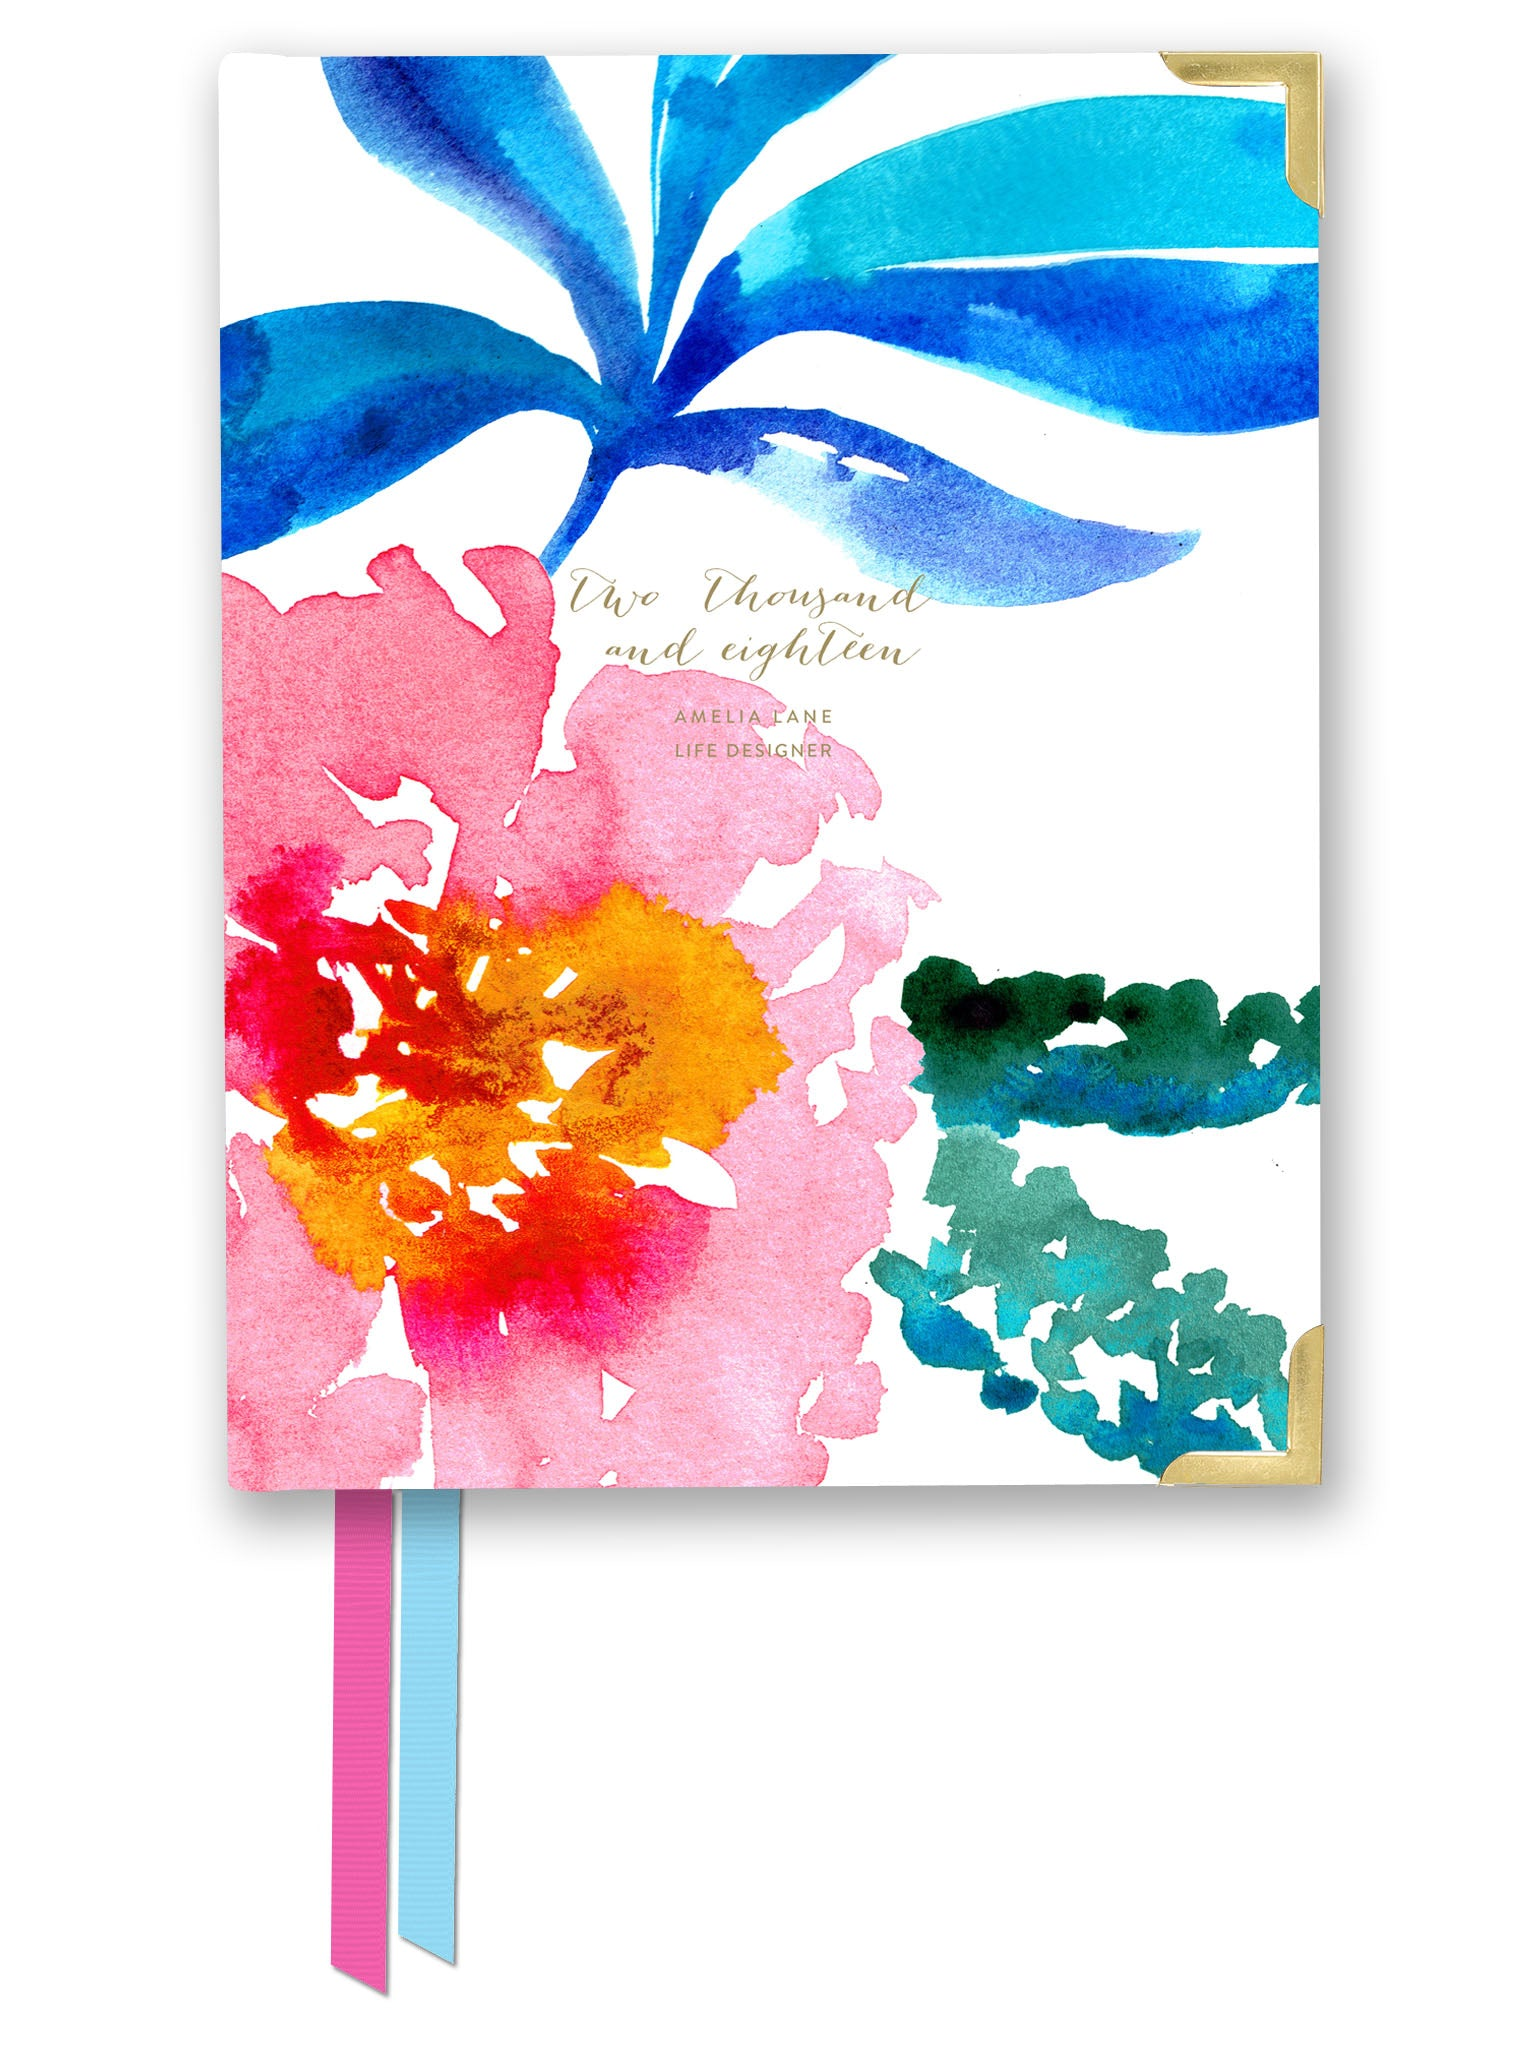 2018 Amelia Lane Life Designer, Compact Daily (Spring Floral)